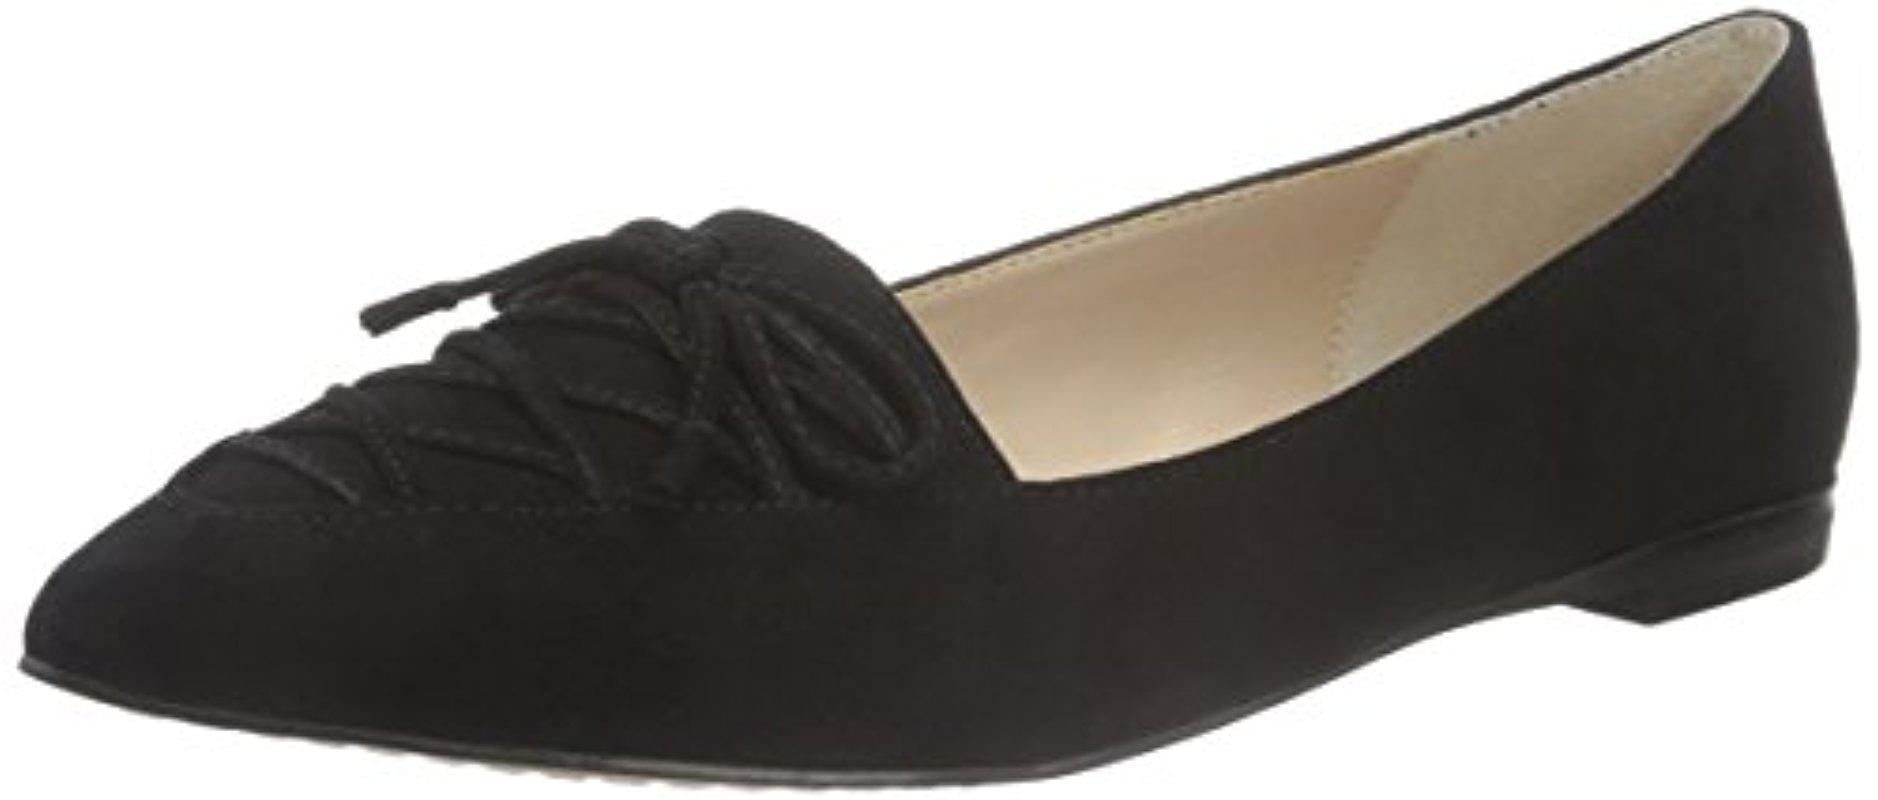 Womens Gesine Ballet Flats, US French Connection